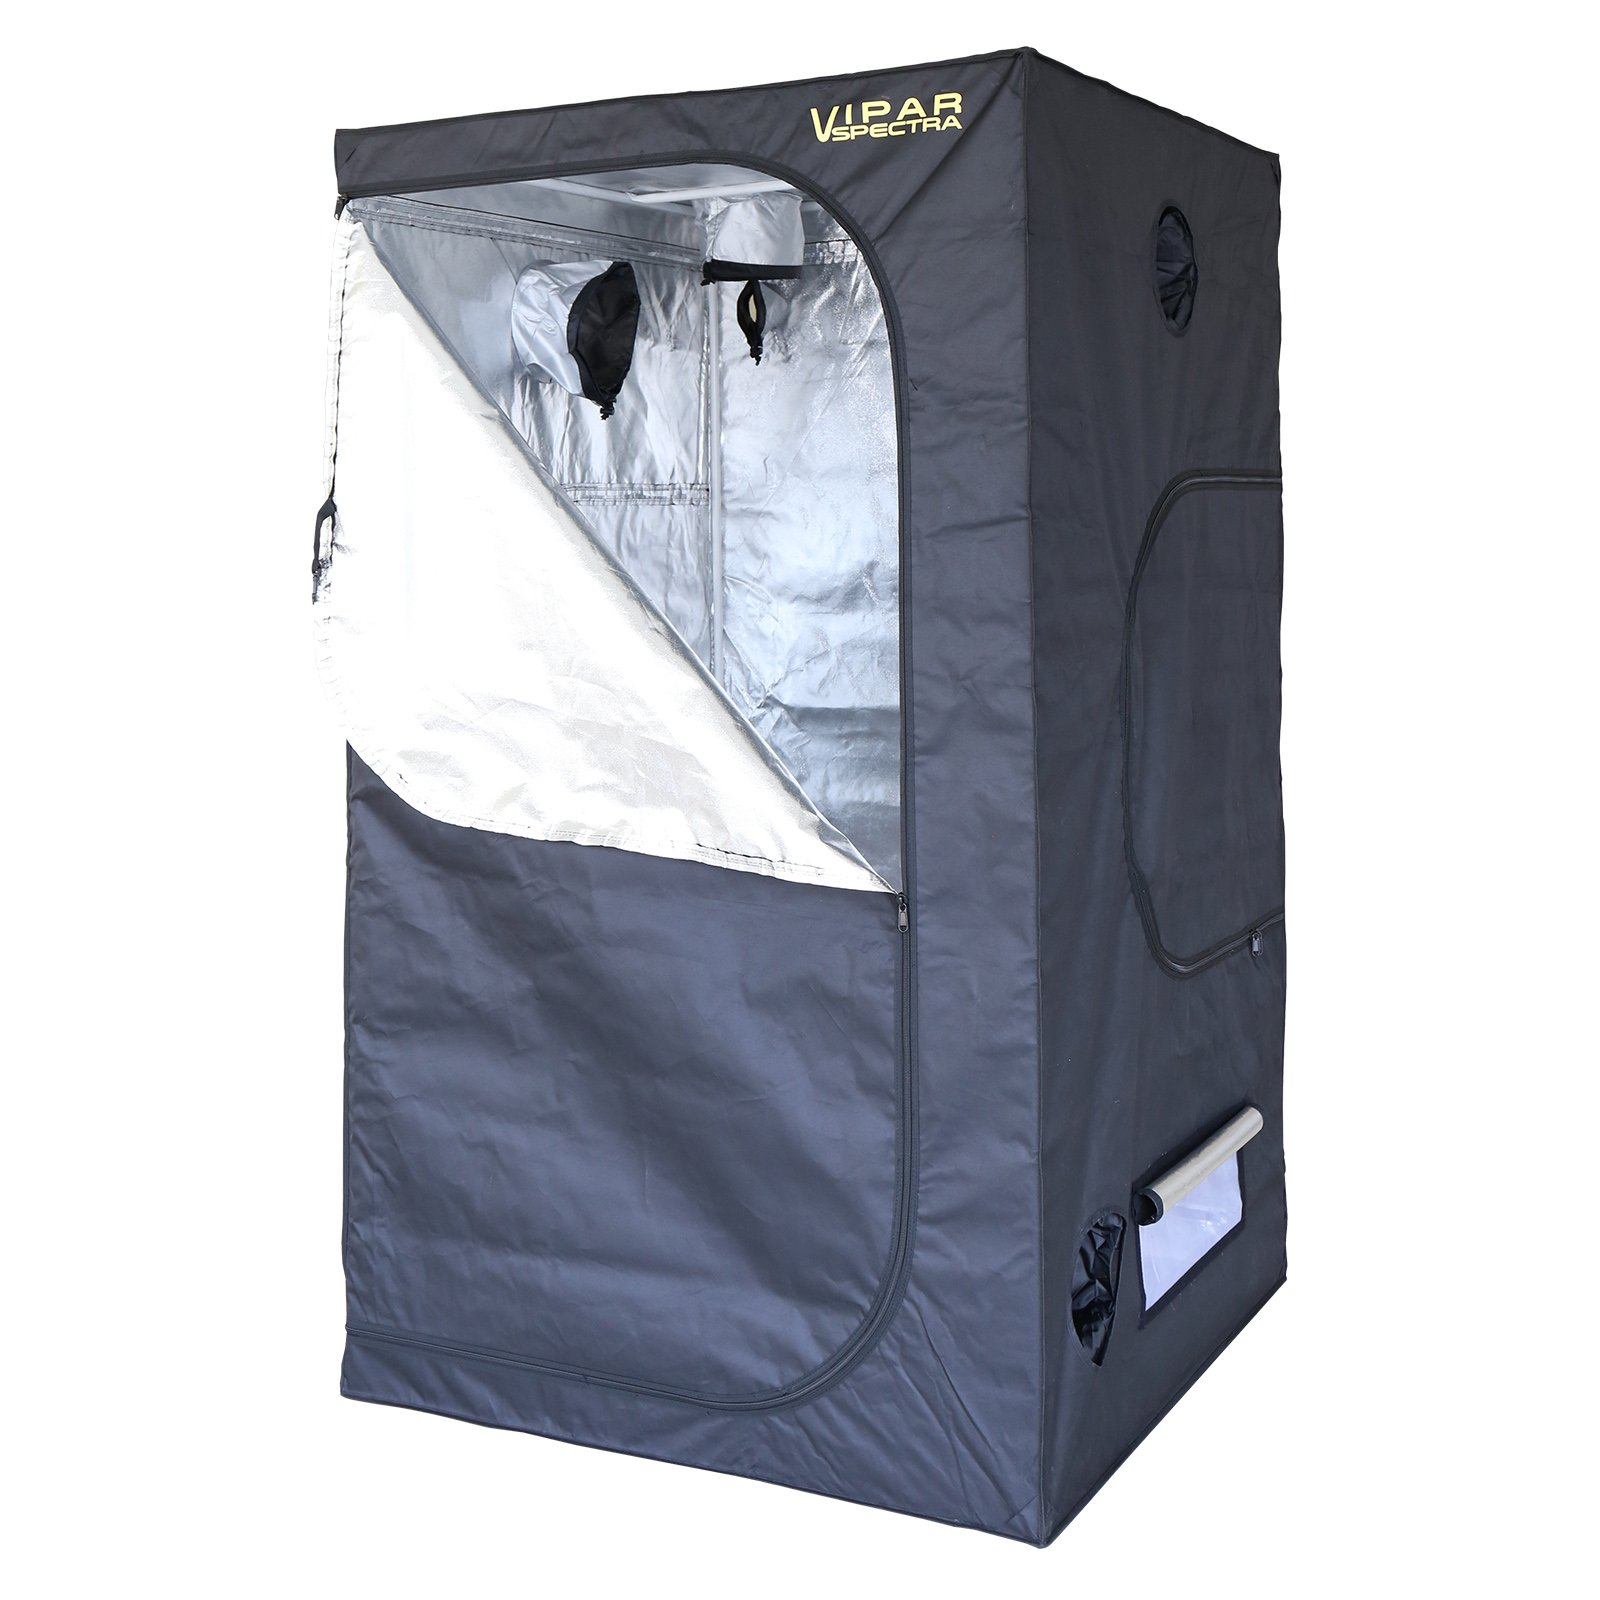 VIPARSPECTRA 48''x48''x80'' Reflective 600D Mylar Grow Tent for Hydroponic Indoor Plant Growing 4'x4'